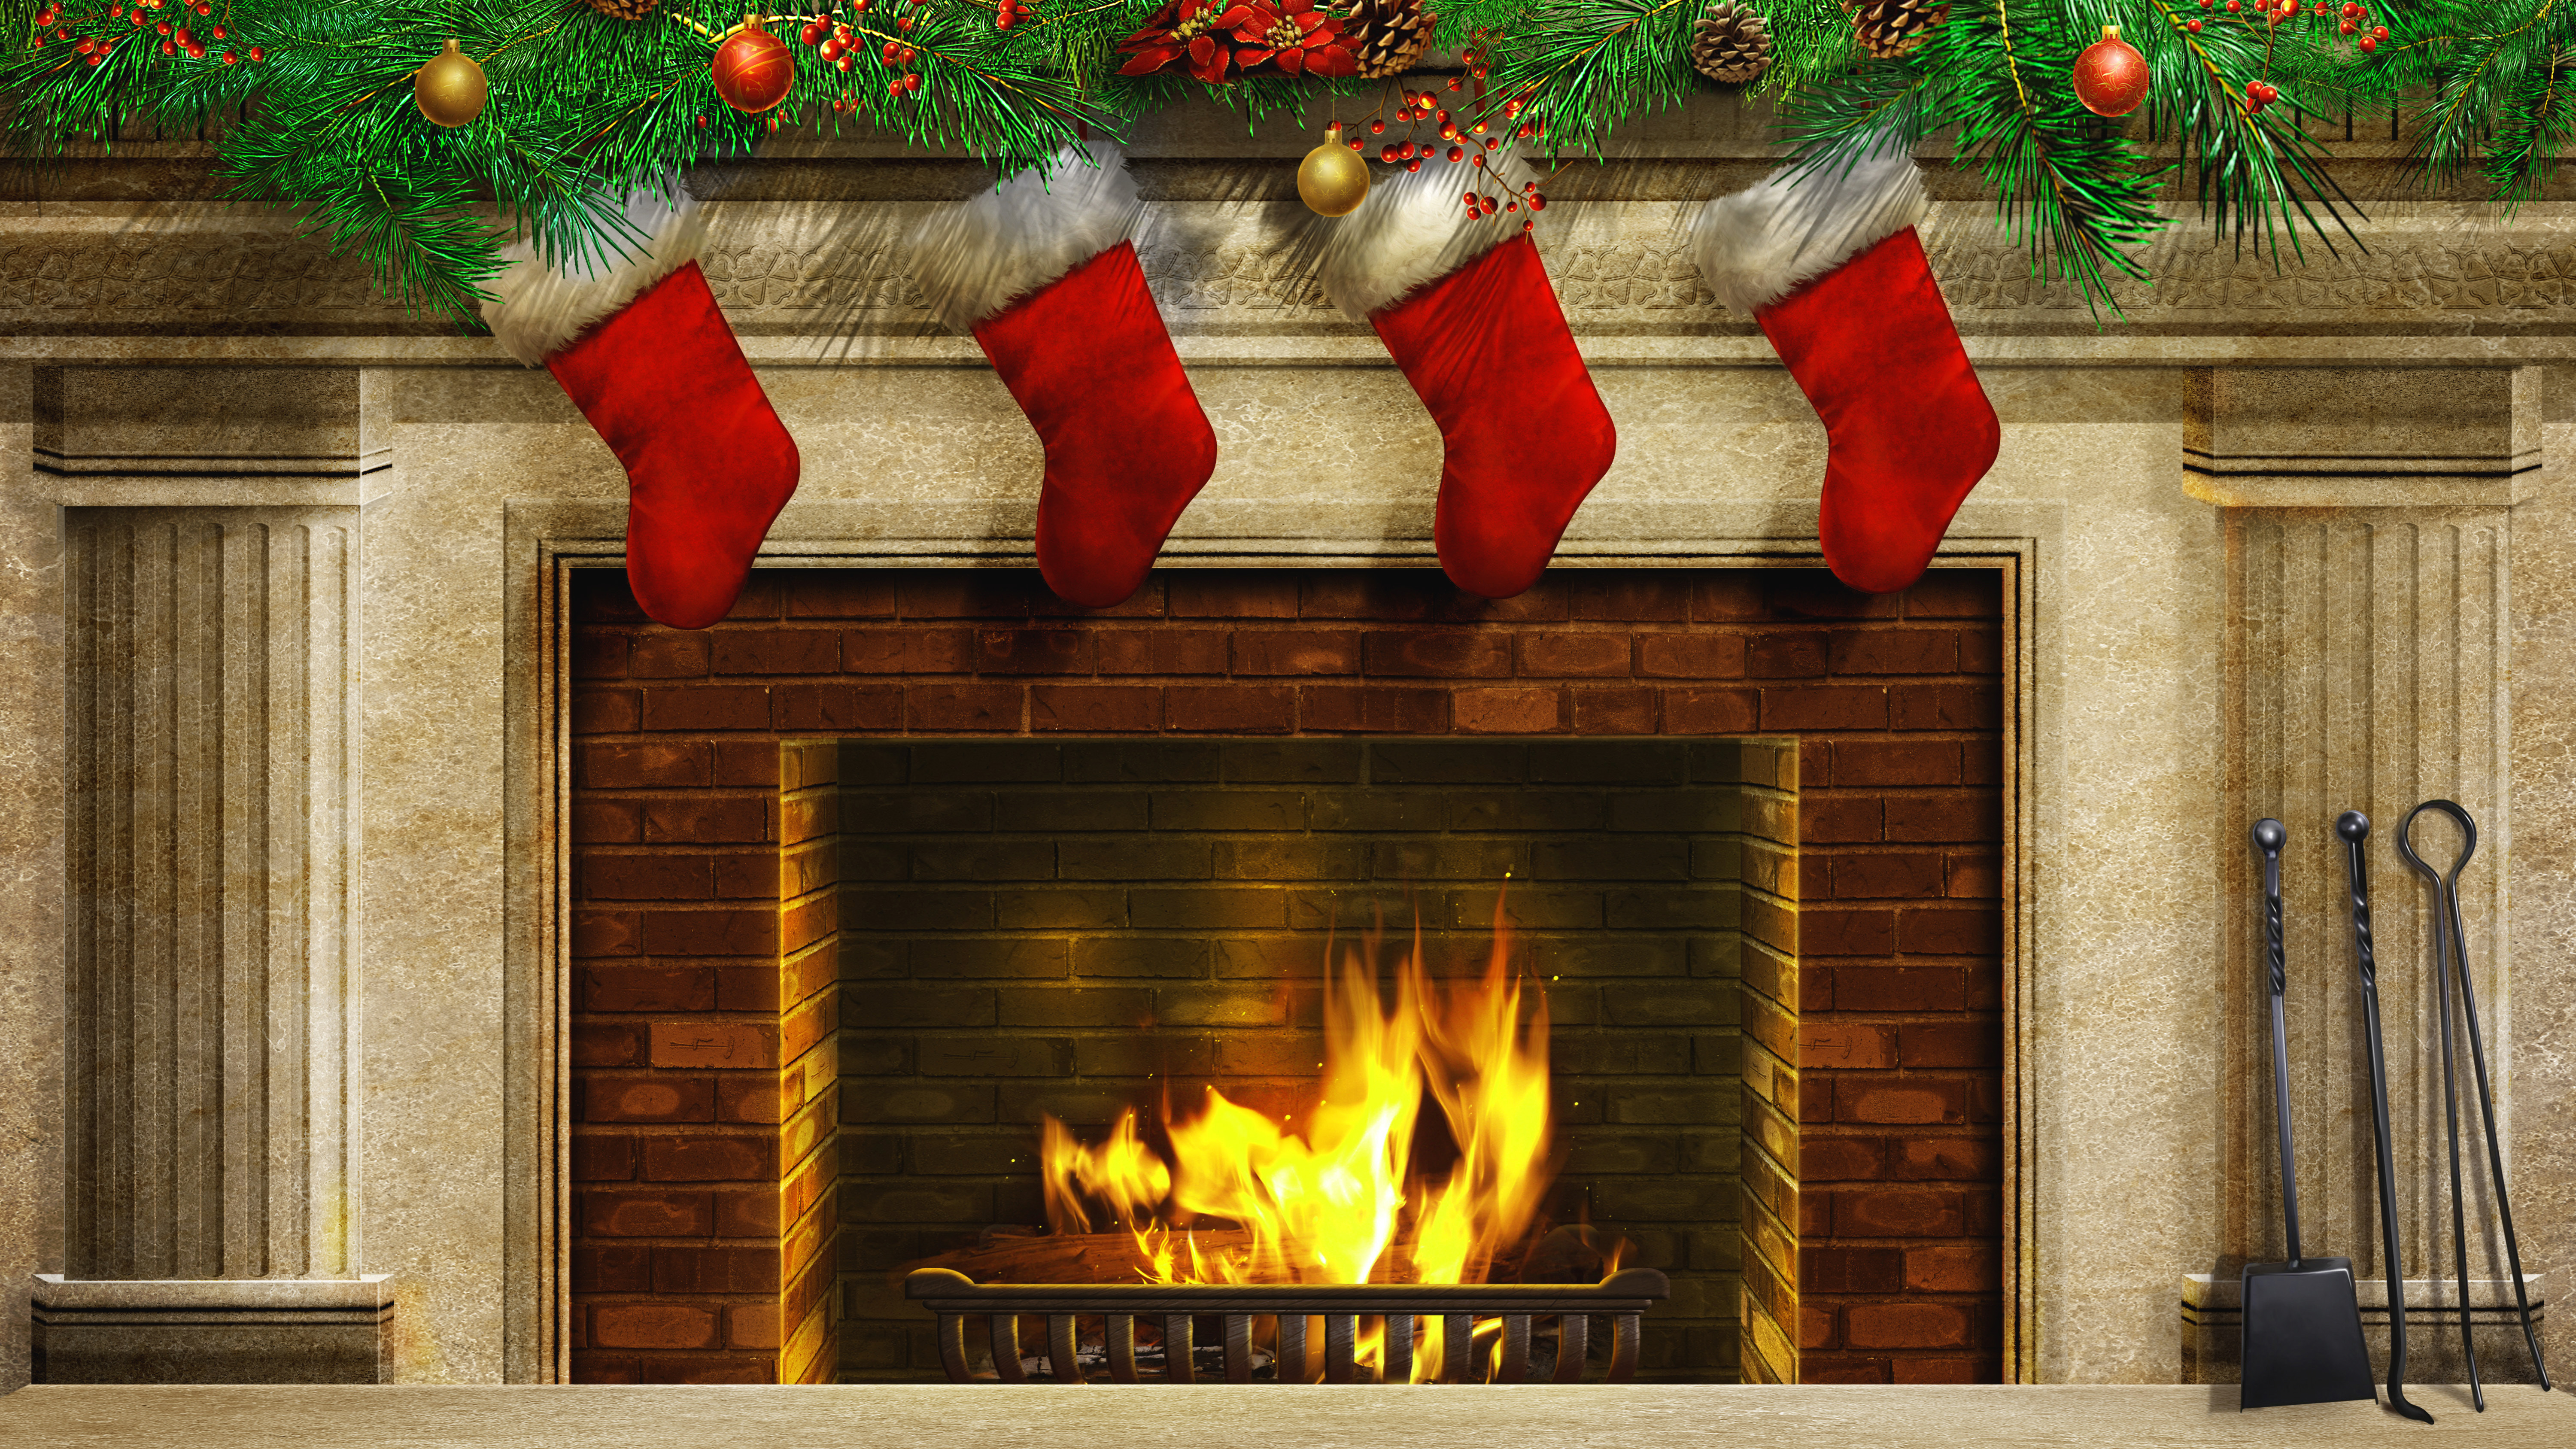 Fireplace clipart stone fireplace  com Clipart Fireplace Clipartion